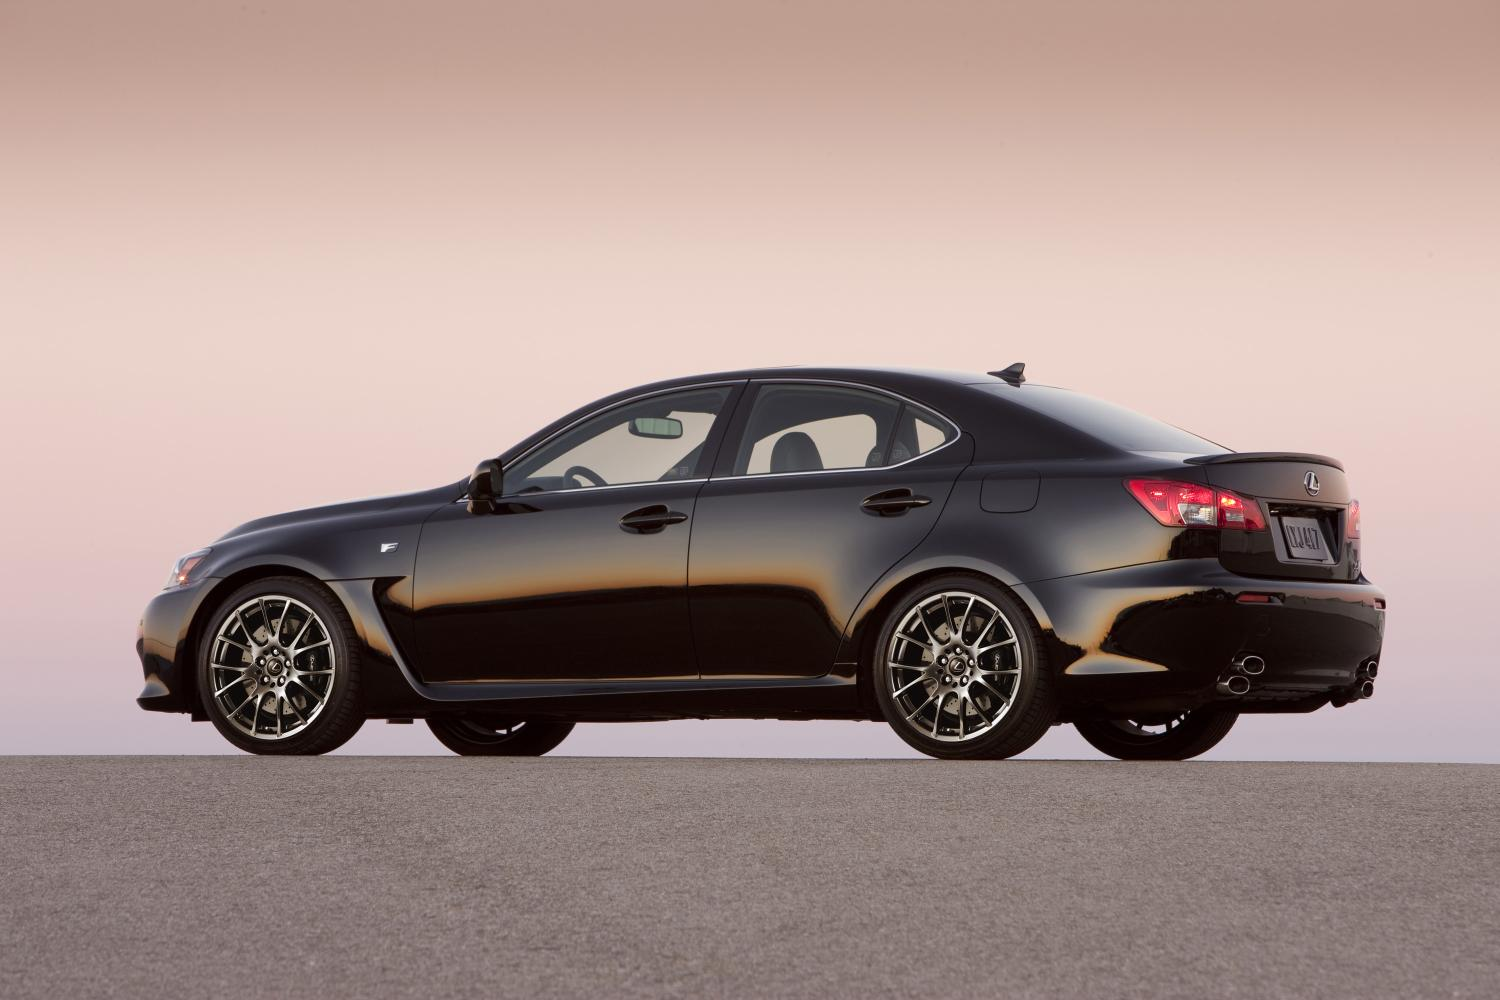 2014 lexus isf specs - photo #4